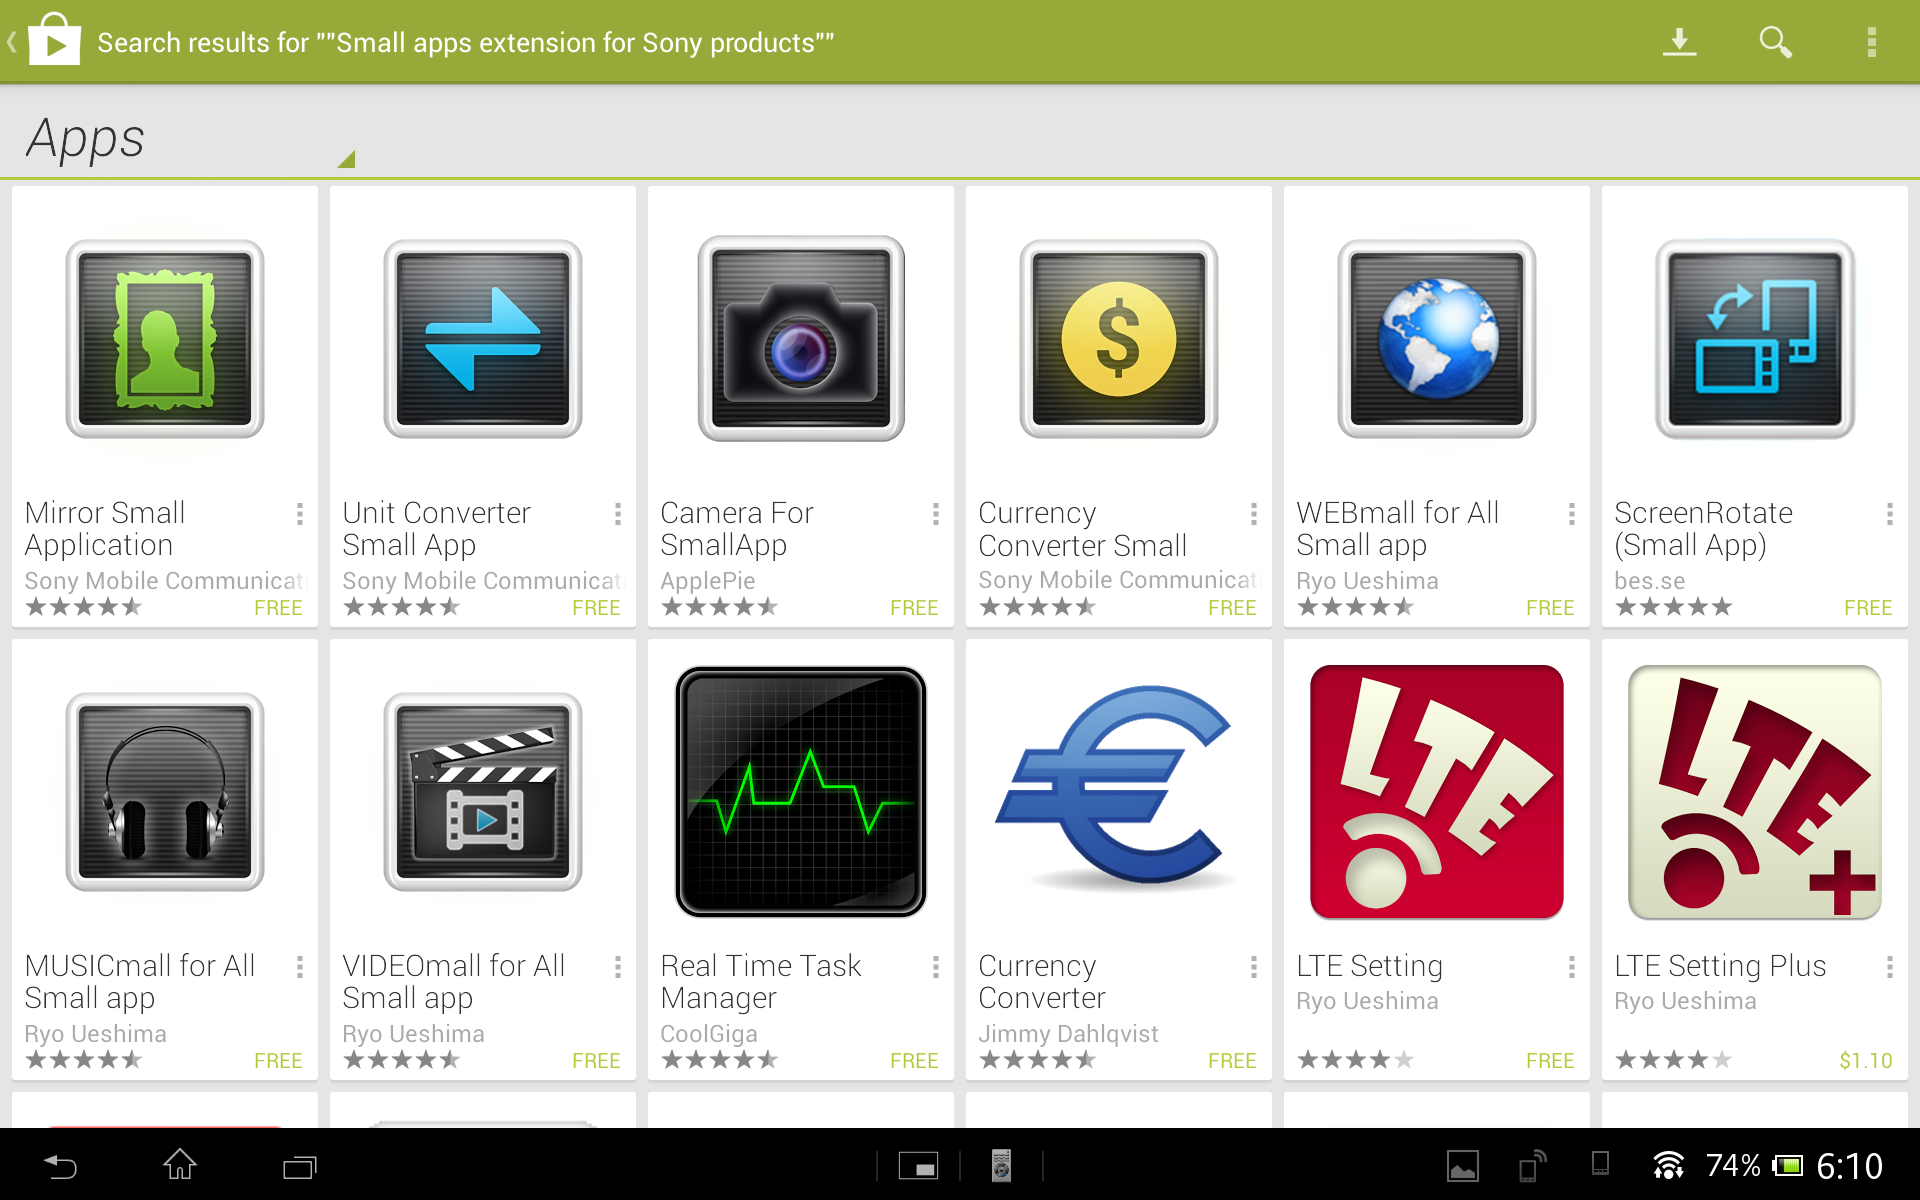 ...and the apps that can be used with it.